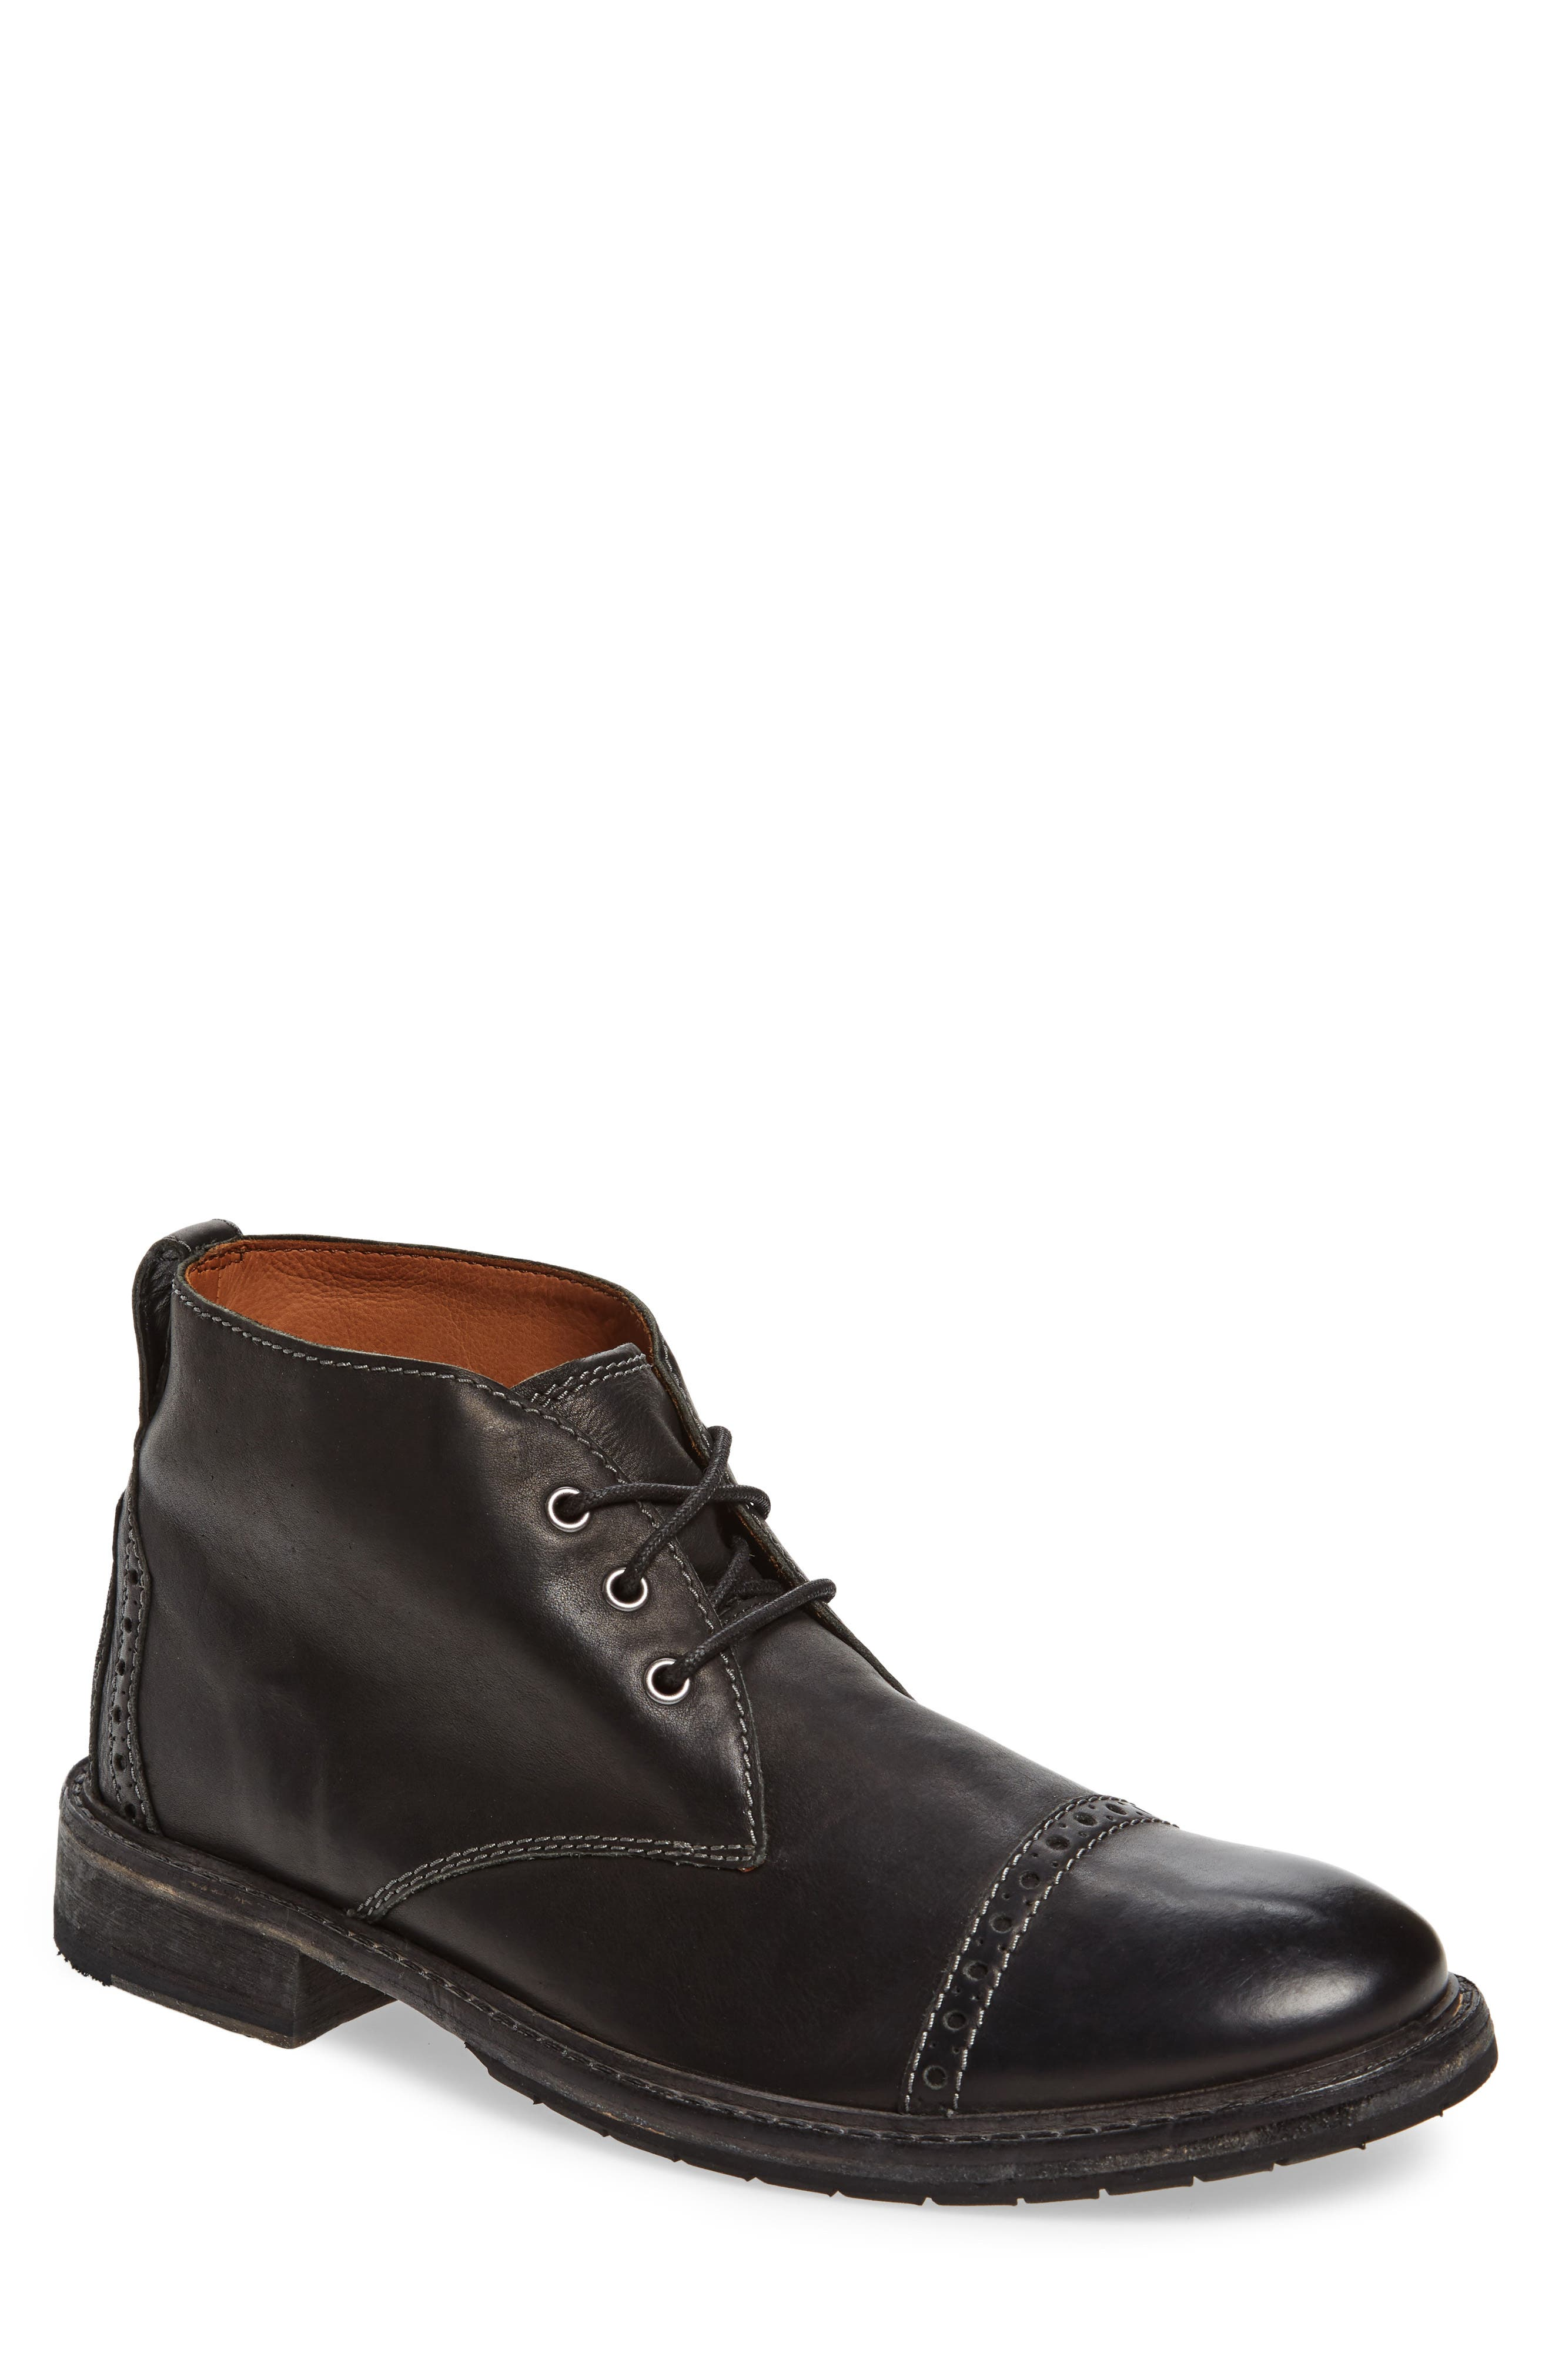 Clarkdale Water Resistant Chukka Boot,                         Main,                         color, 003